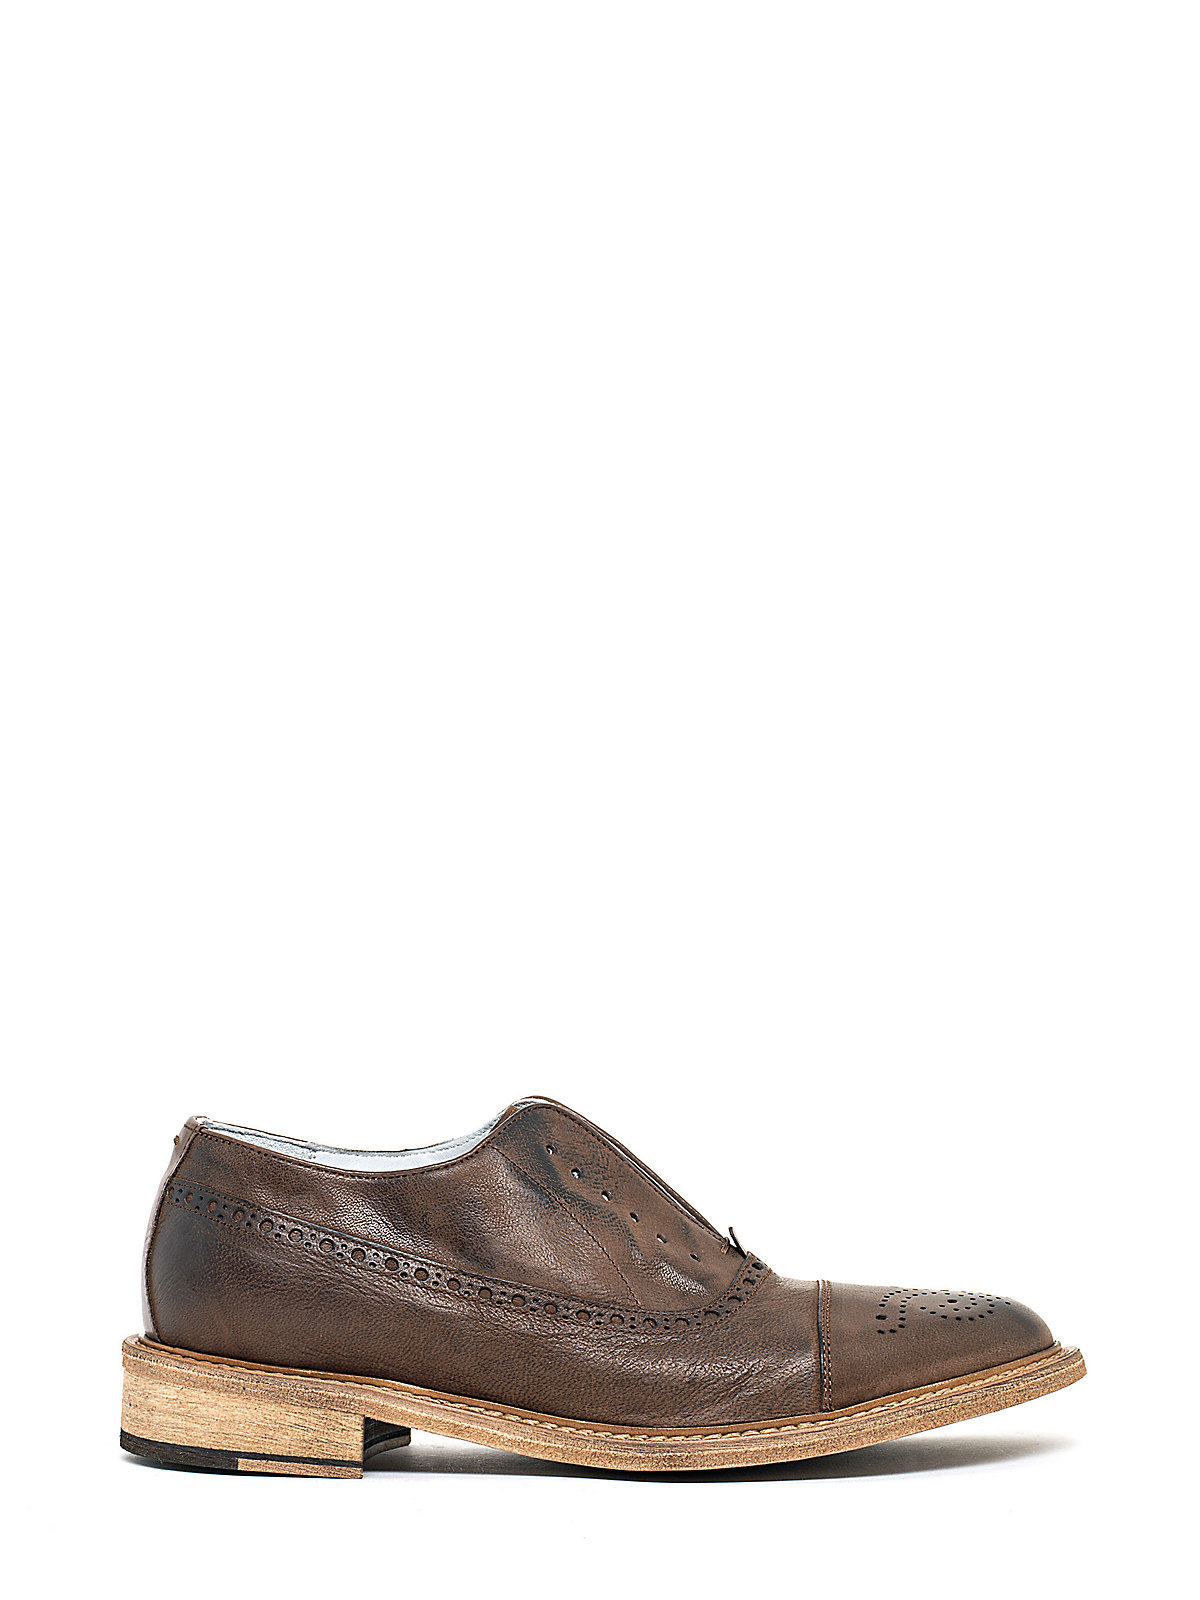 patrizia pepe vintage leather look derby laceless shoes in